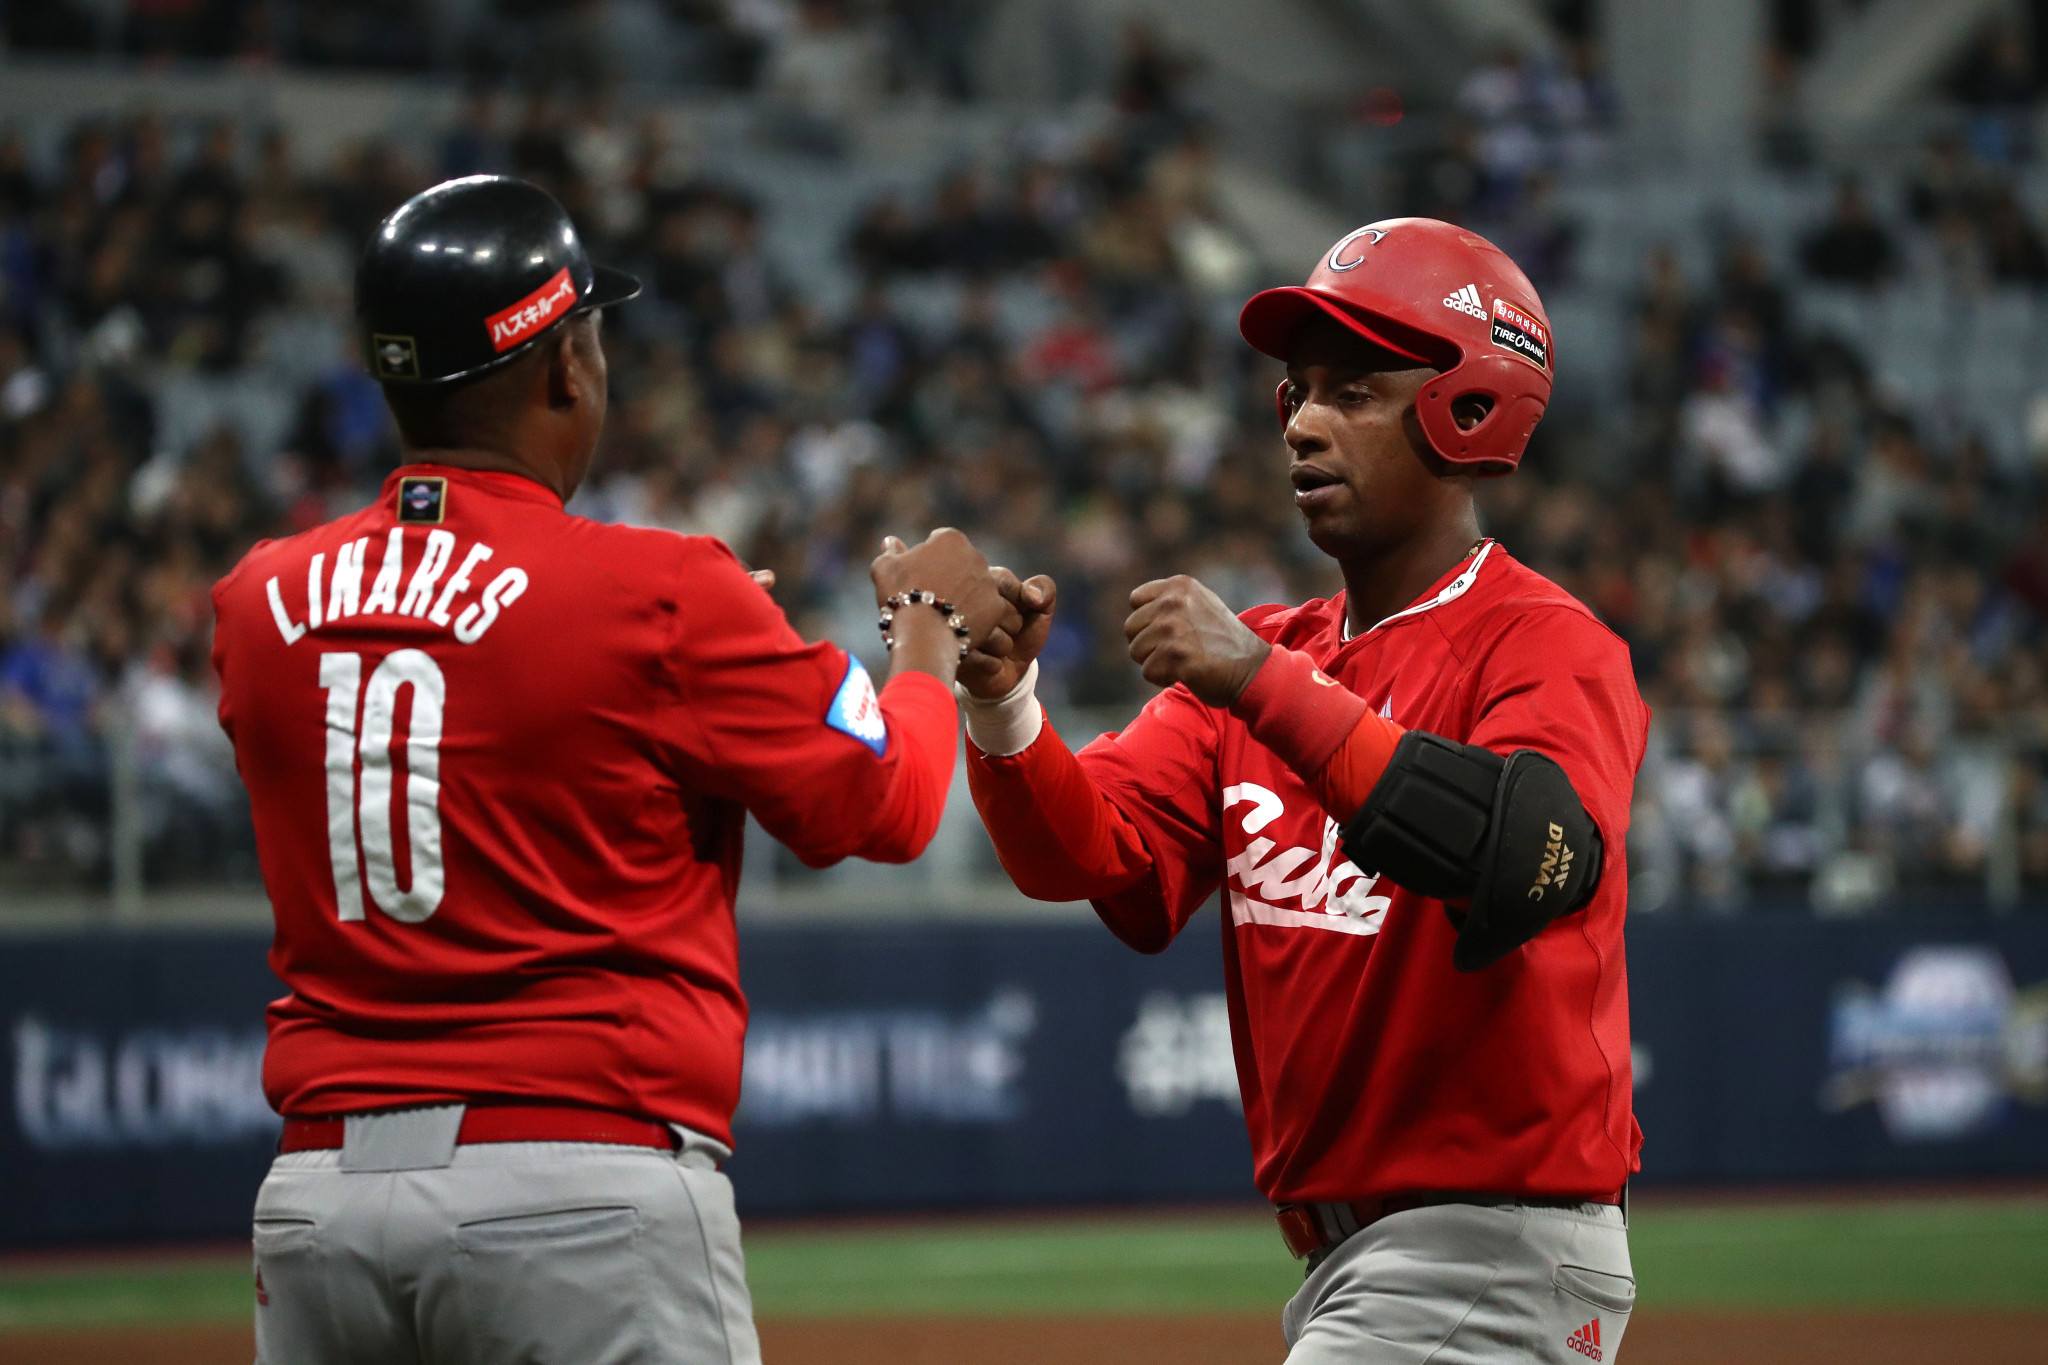 Cuba, Chinese Taipei secure final super round spots at Under-23 Baseball World Cup